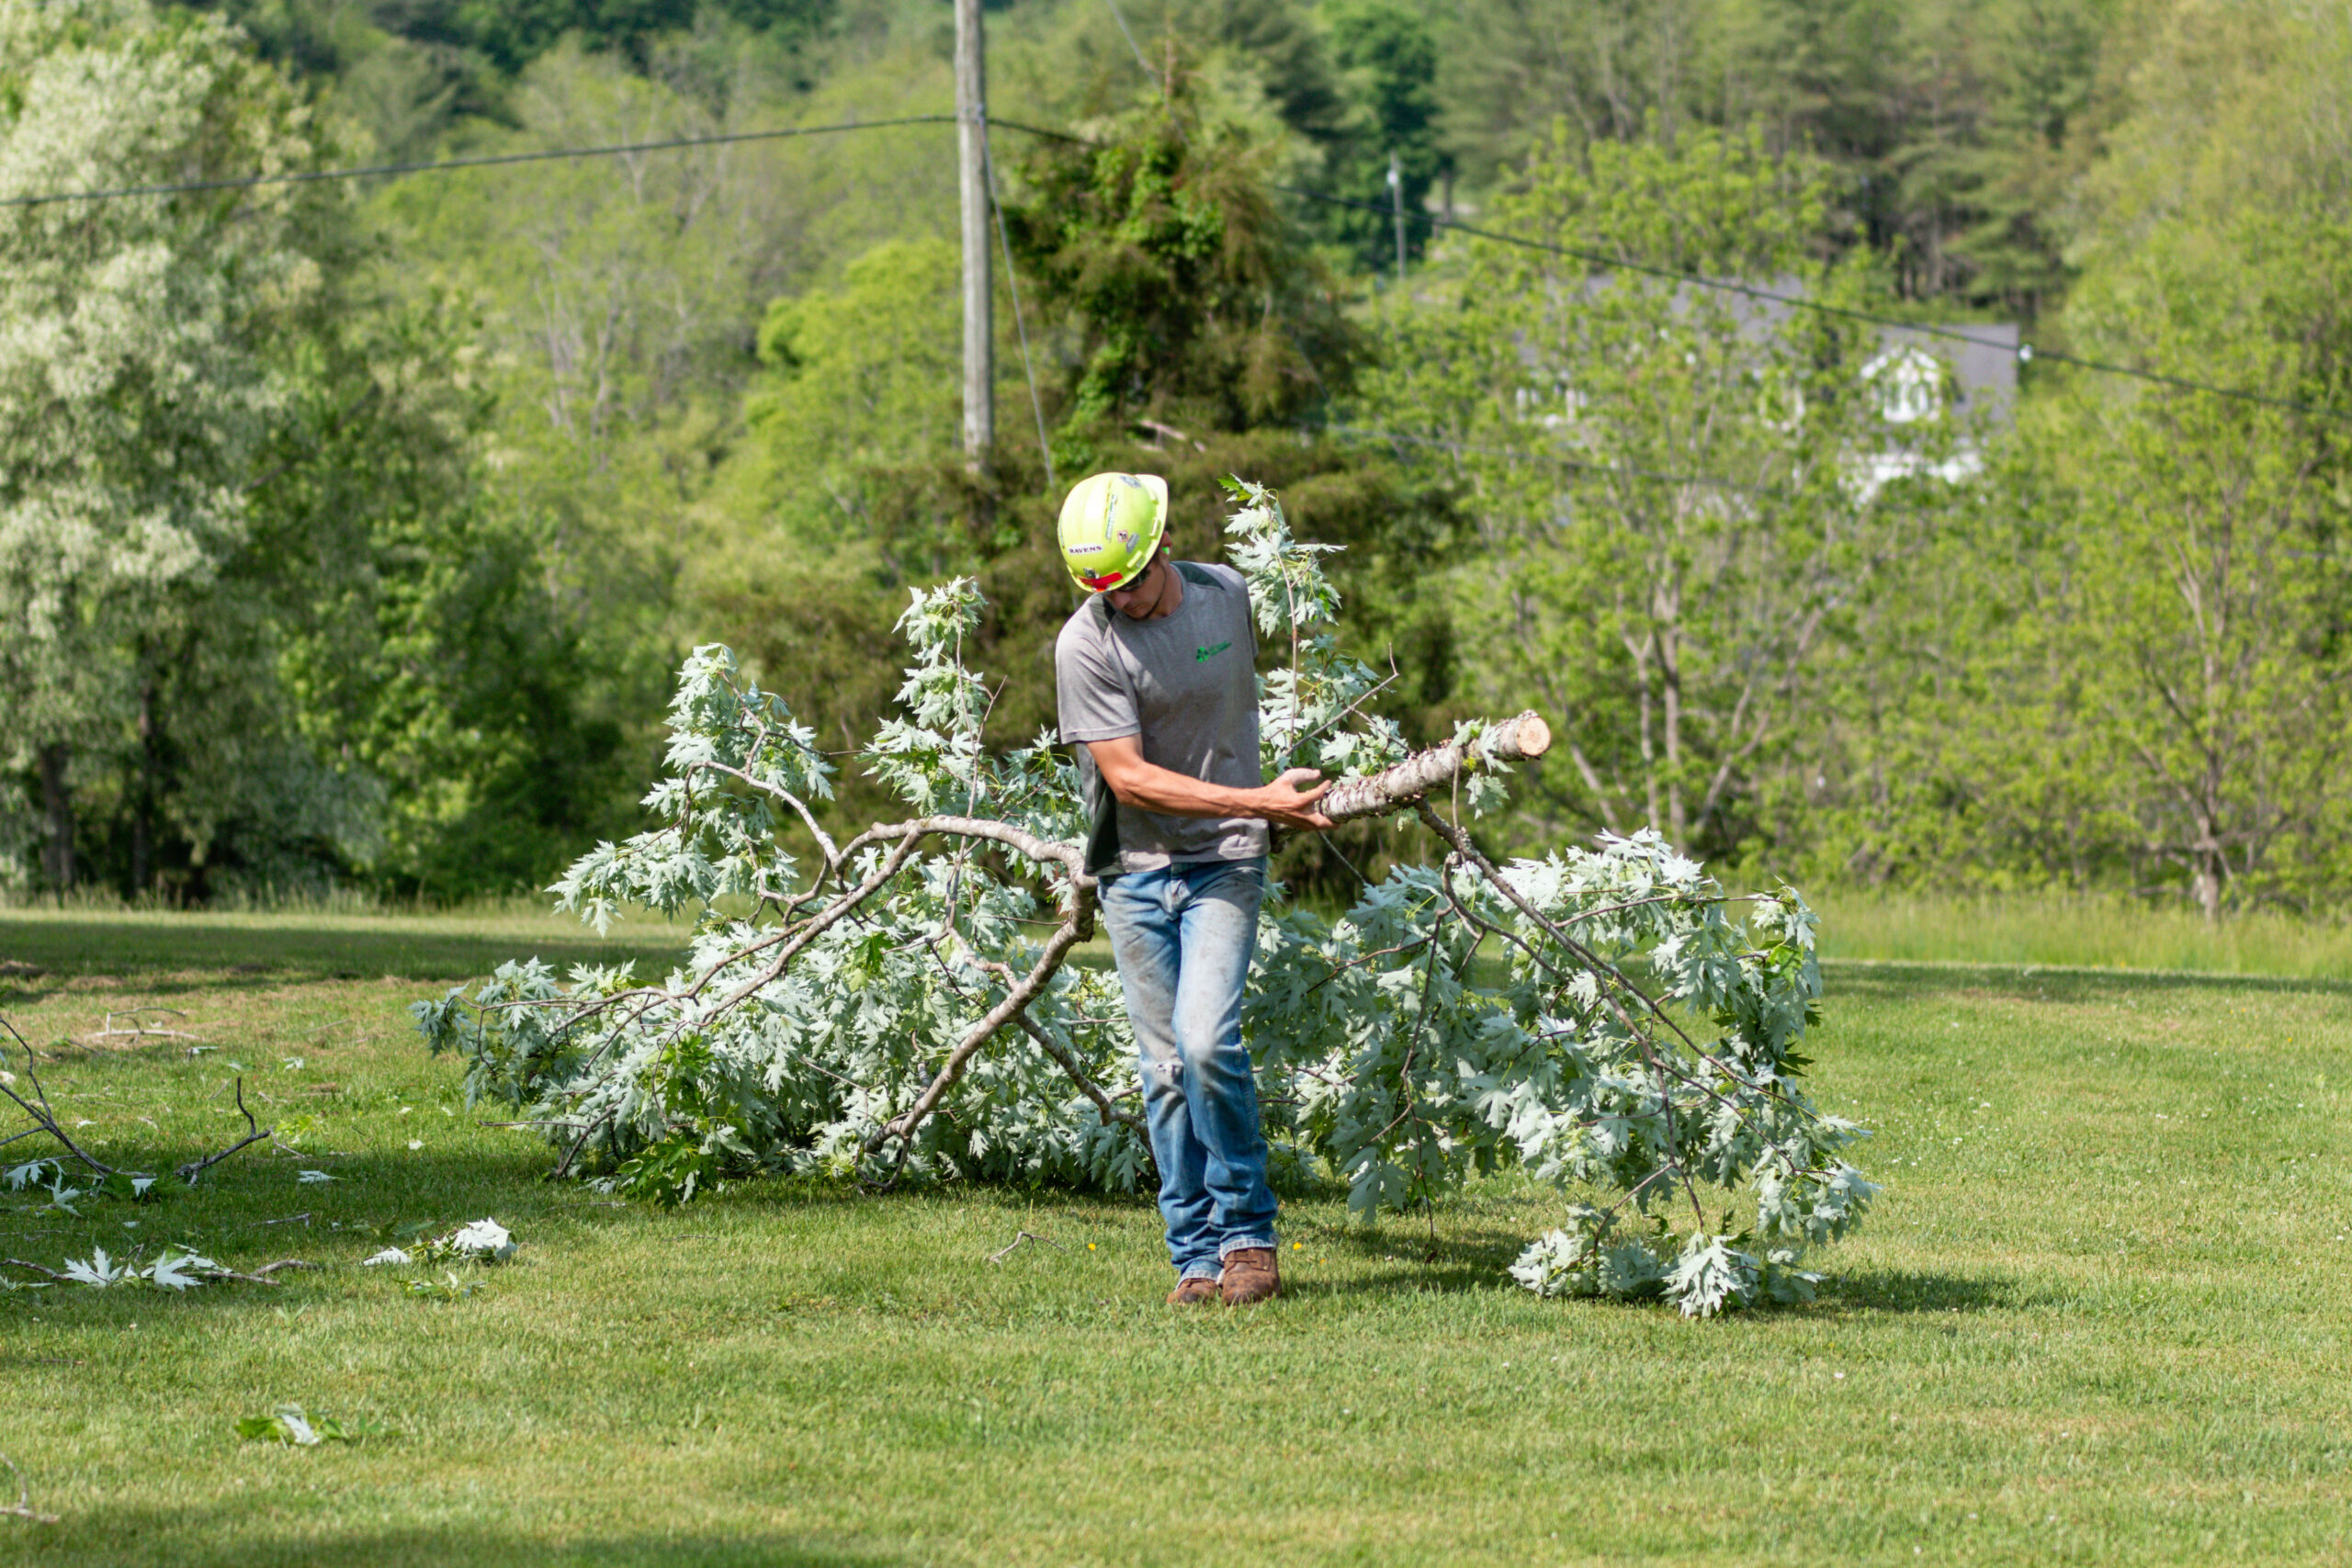 Dragging Away Cut Branches For Removal